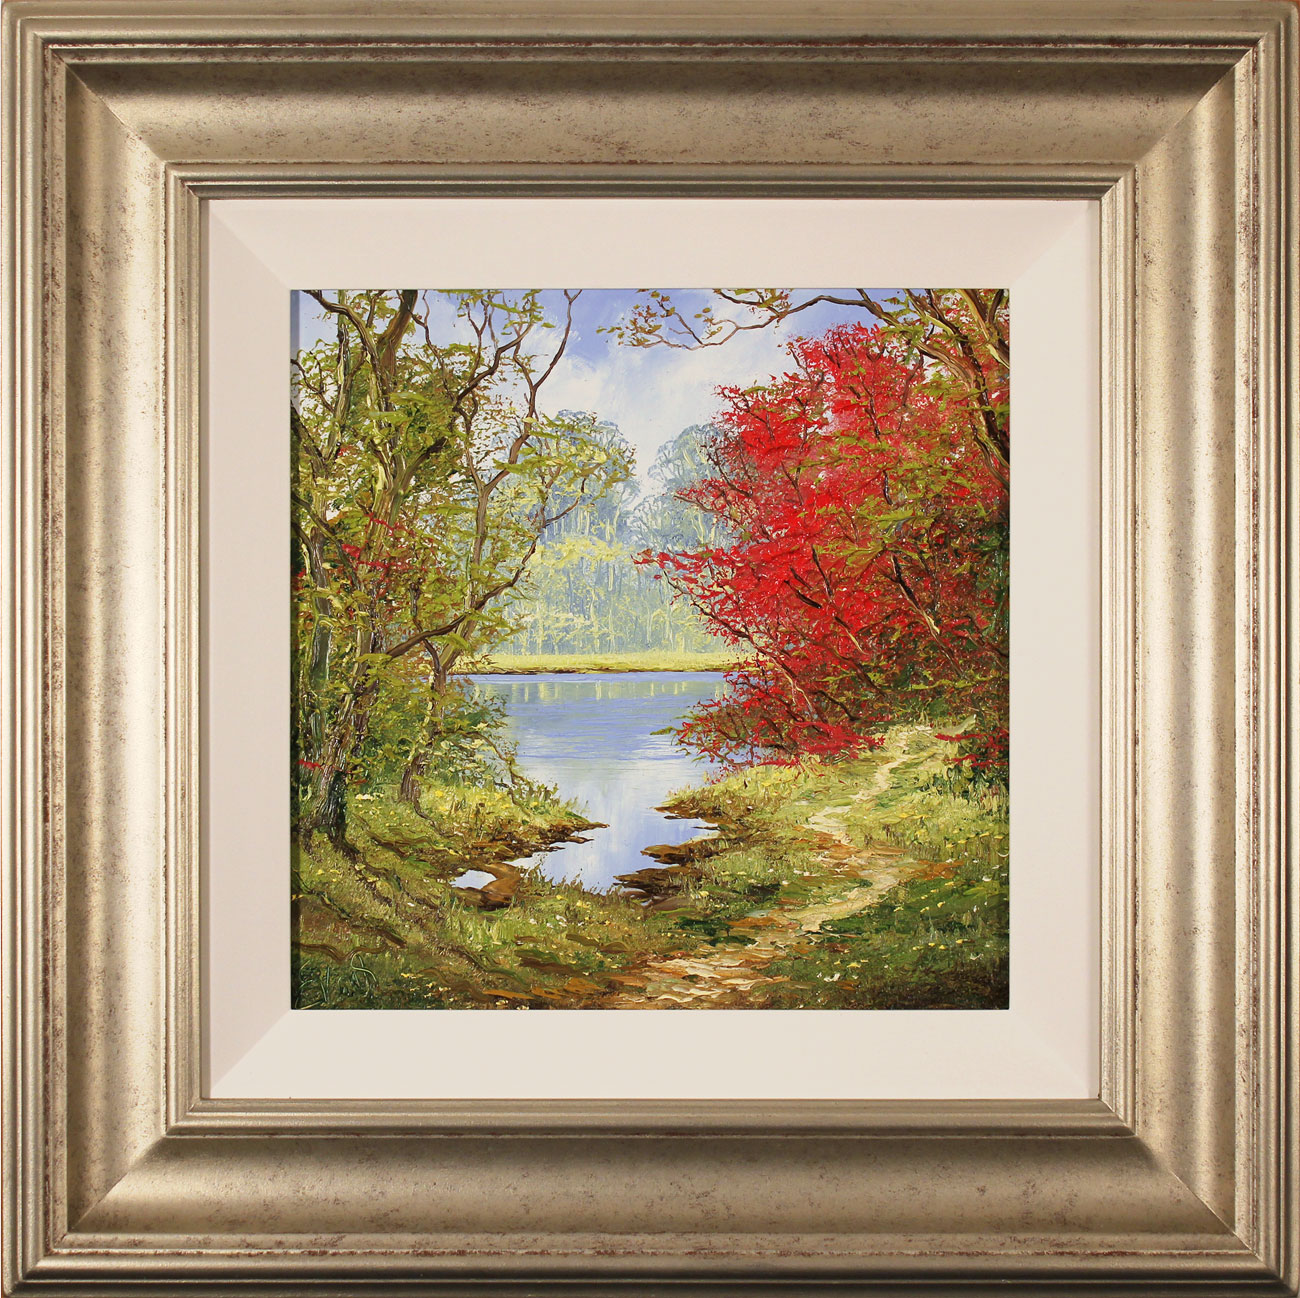 Terry Evans, Original oil painting on canvas, Early Autumn Wood. Click to enlarge